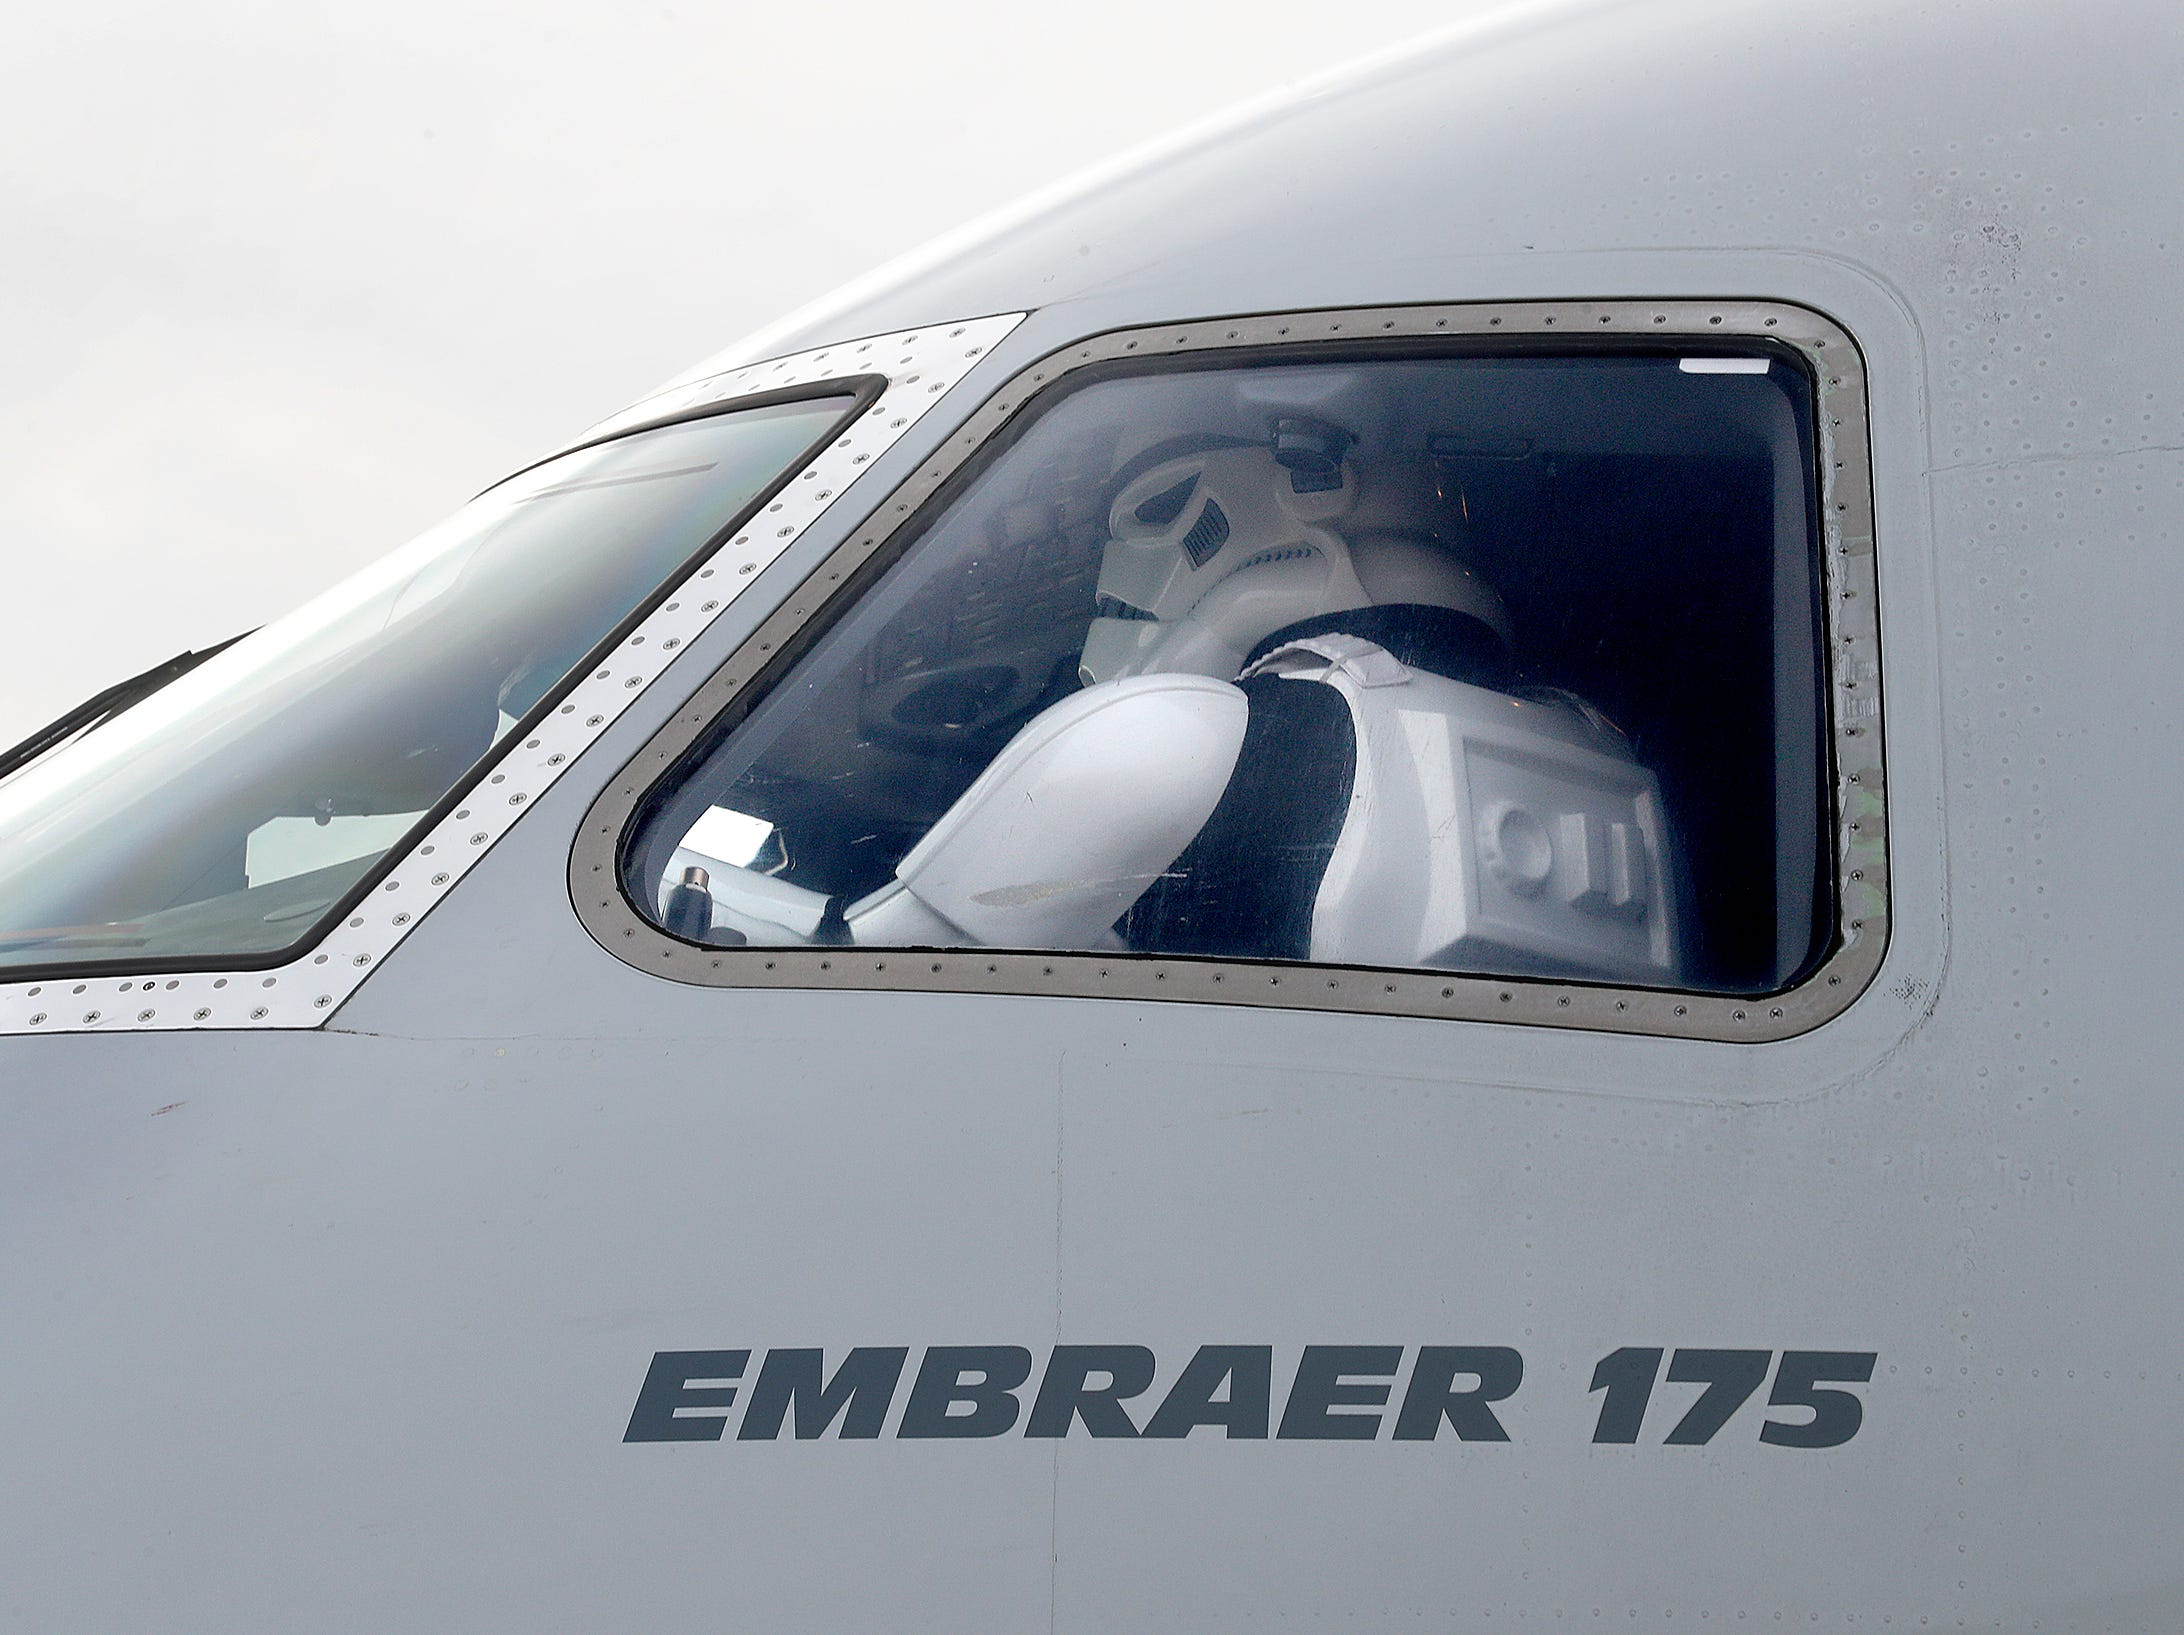 Members of the Star Wars 501st and Rebel Legion get a tour of the Embraer 175 American Eagle aircraft during the 9th Annual Republic Airways Plane Pull at the Republic Airways Hanger at the Indianapolis International Airport on Saturday, April 13, 2019.